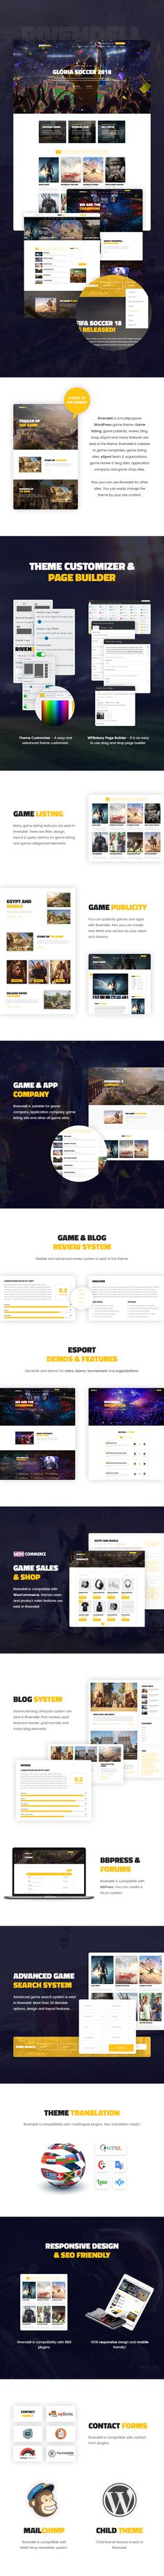 Rivendell is a multipurpose WordPress game theme. Game listing, game publicity, review, blog, shop, eSport and many features are exist in the theme. Rivendell is suitable to game companies, game listing sites, eSport team & organizations, game review & blog sites, application company and game shop sites. Also you can use Rinvedell for other sites. You can easily change the theme by your site content.